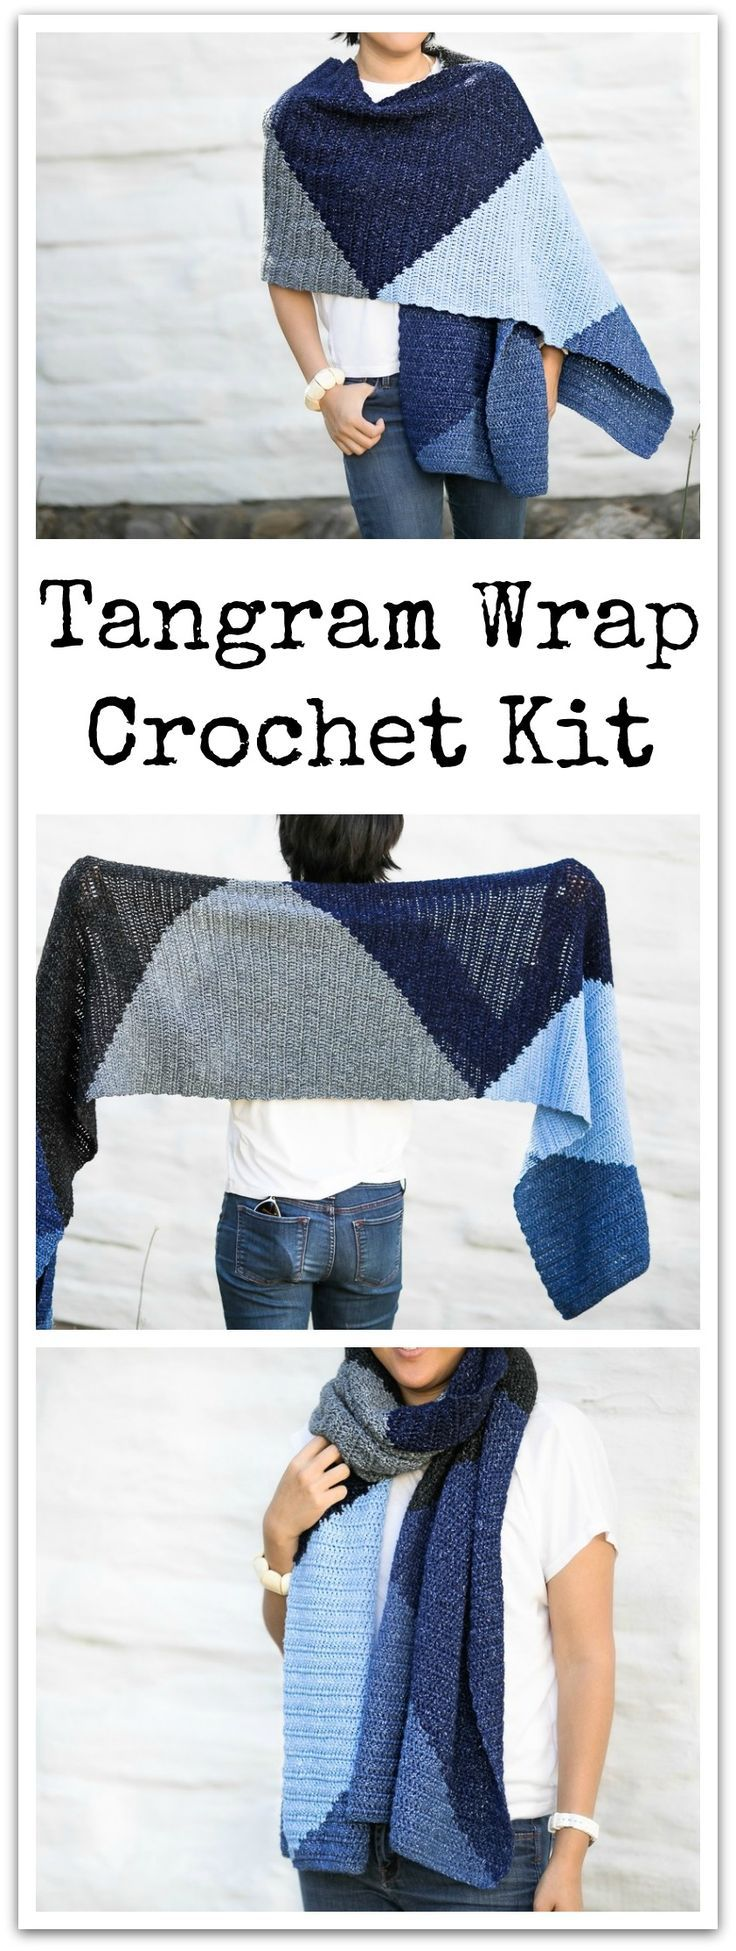 This Tangram Wrap Crochet Kit Is Made In Lion Brand Jeans Yarn